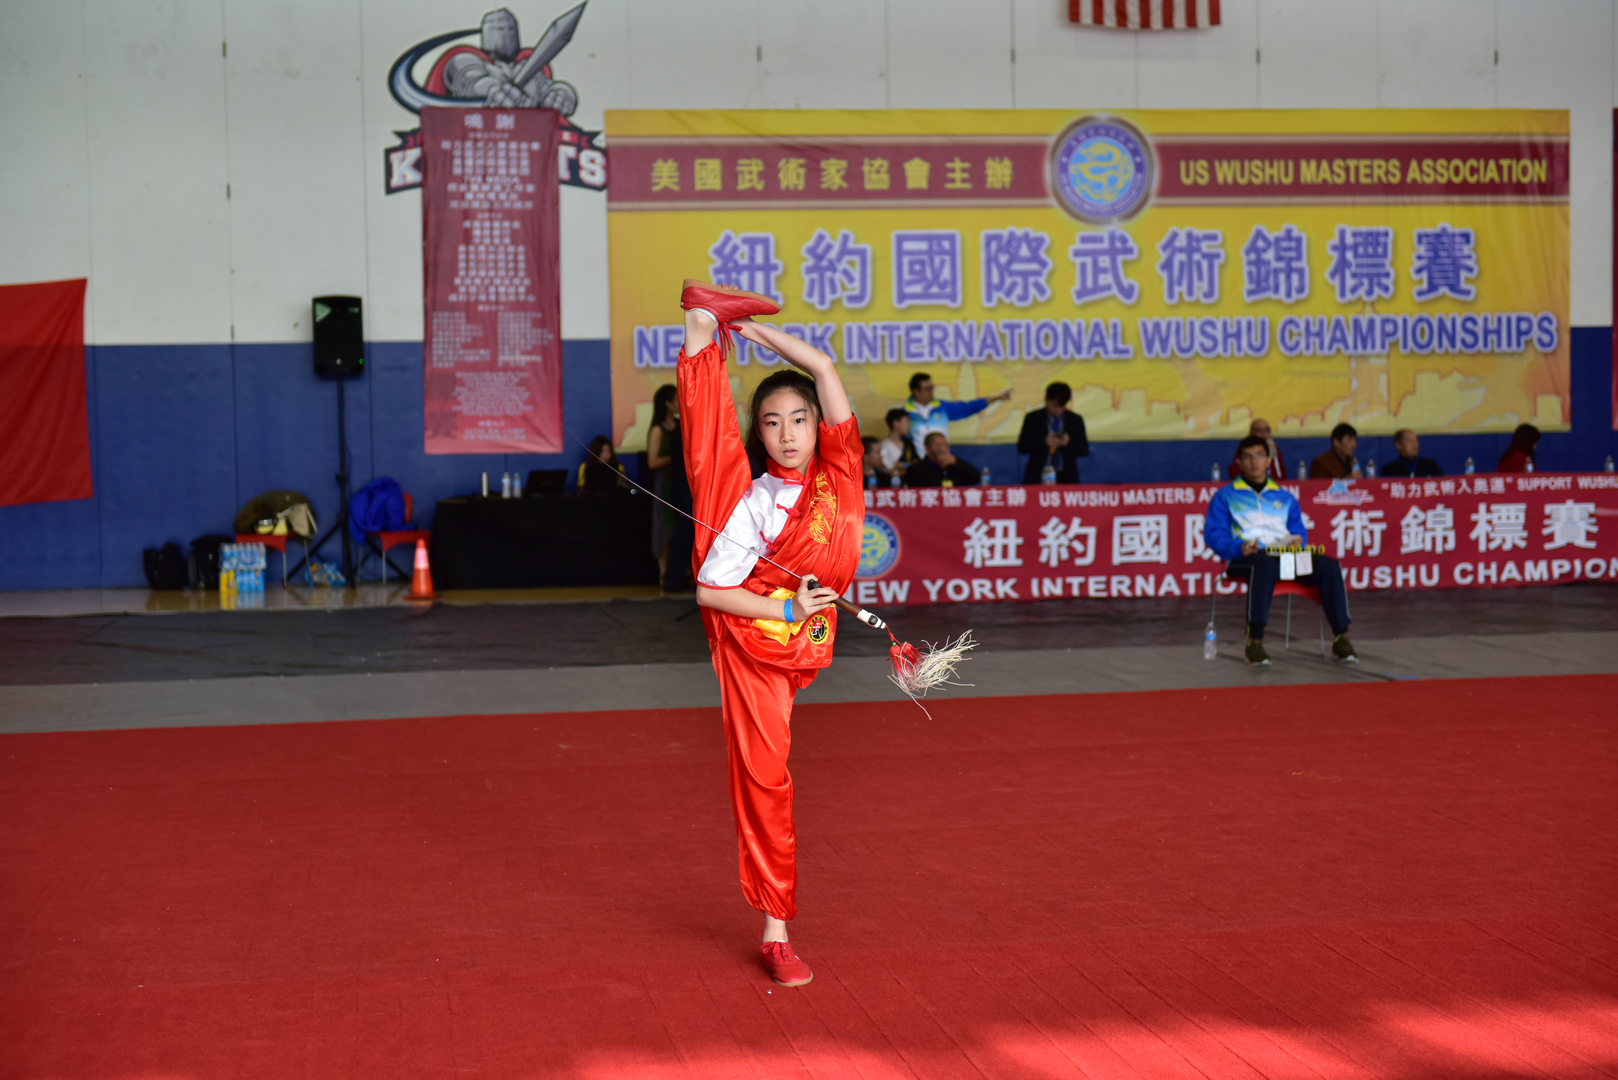 Wu Dang Kungfu Academy-Kungfu Training/Self Defense for both kids